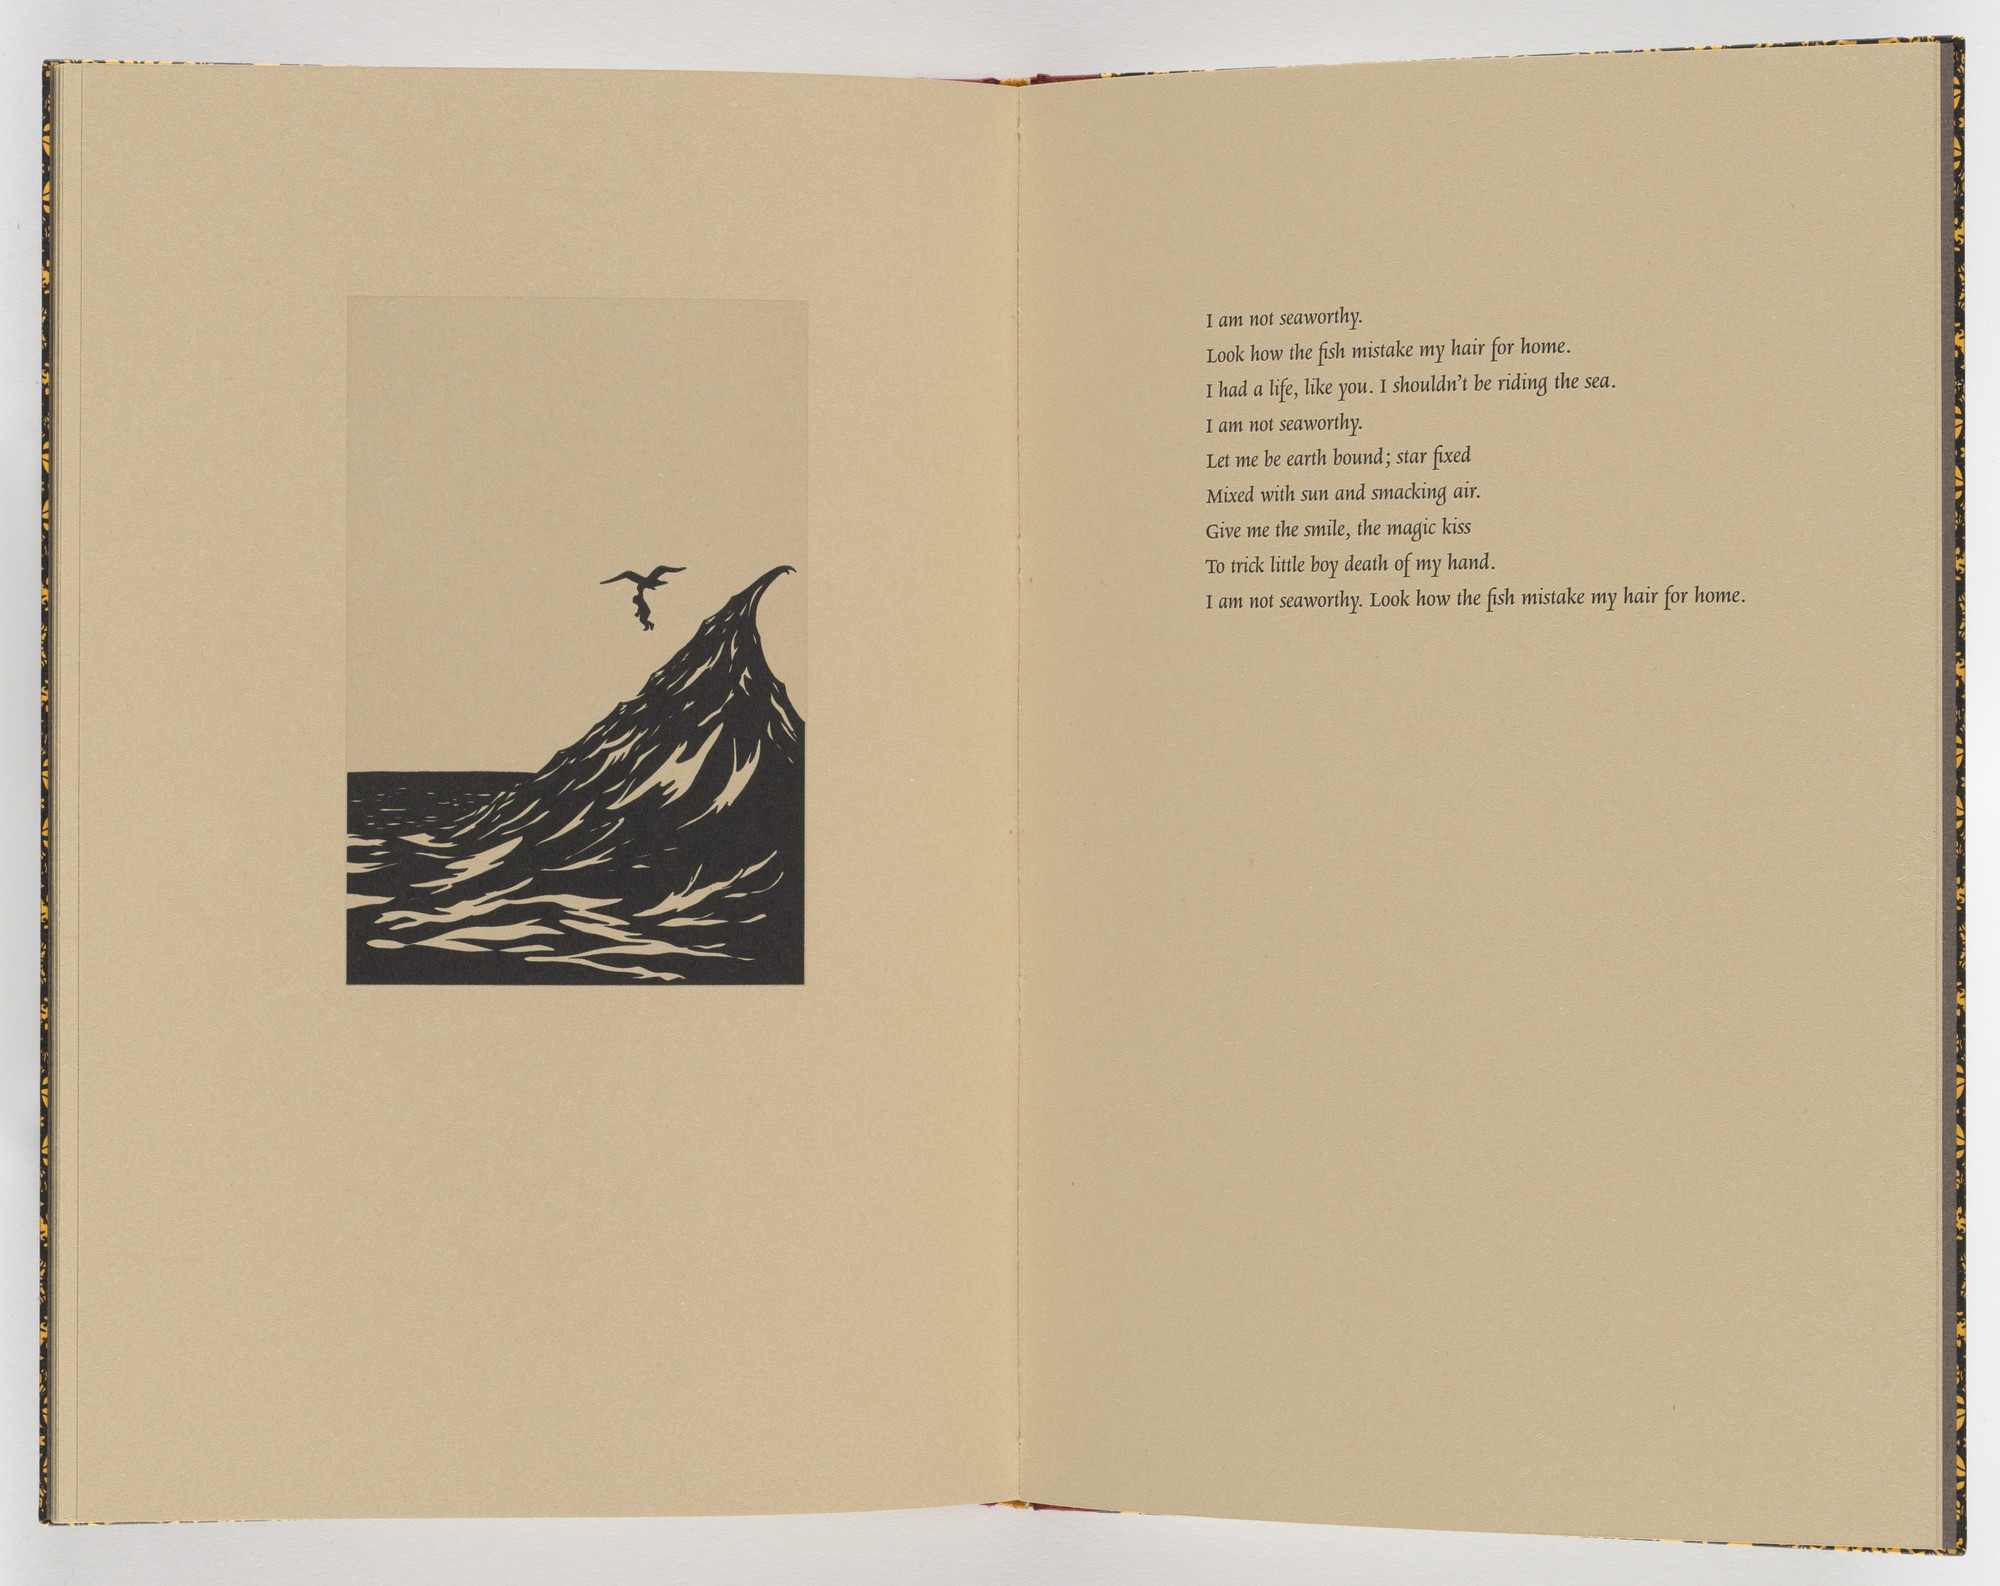 Kara Walker. Plate (page 26) from Five Poems. 2002